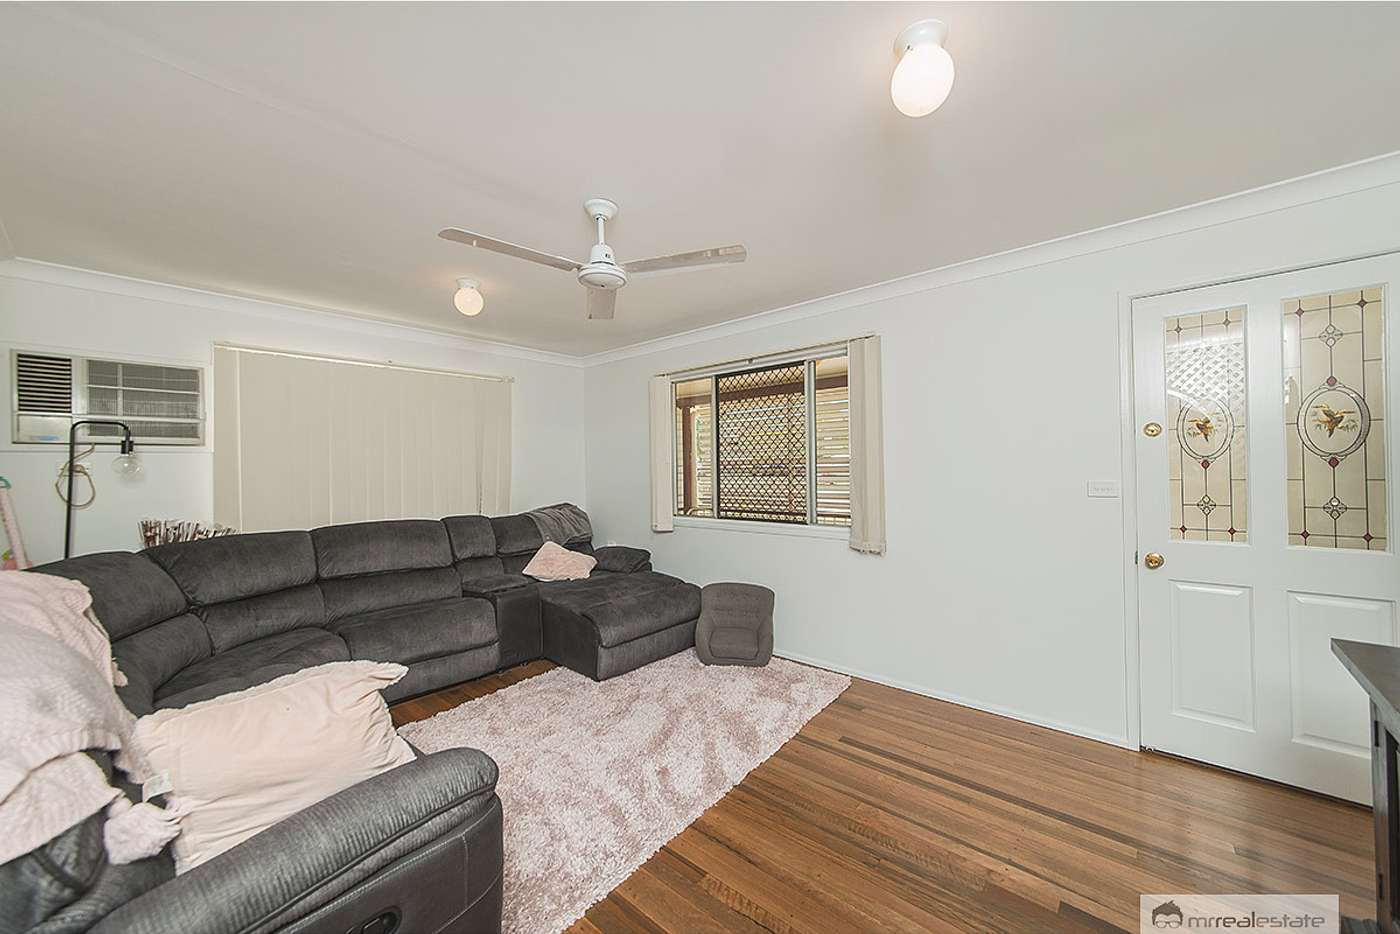 Fifth view of Homely house listing, 83 Simpson Street, Frenchville QLD 4701